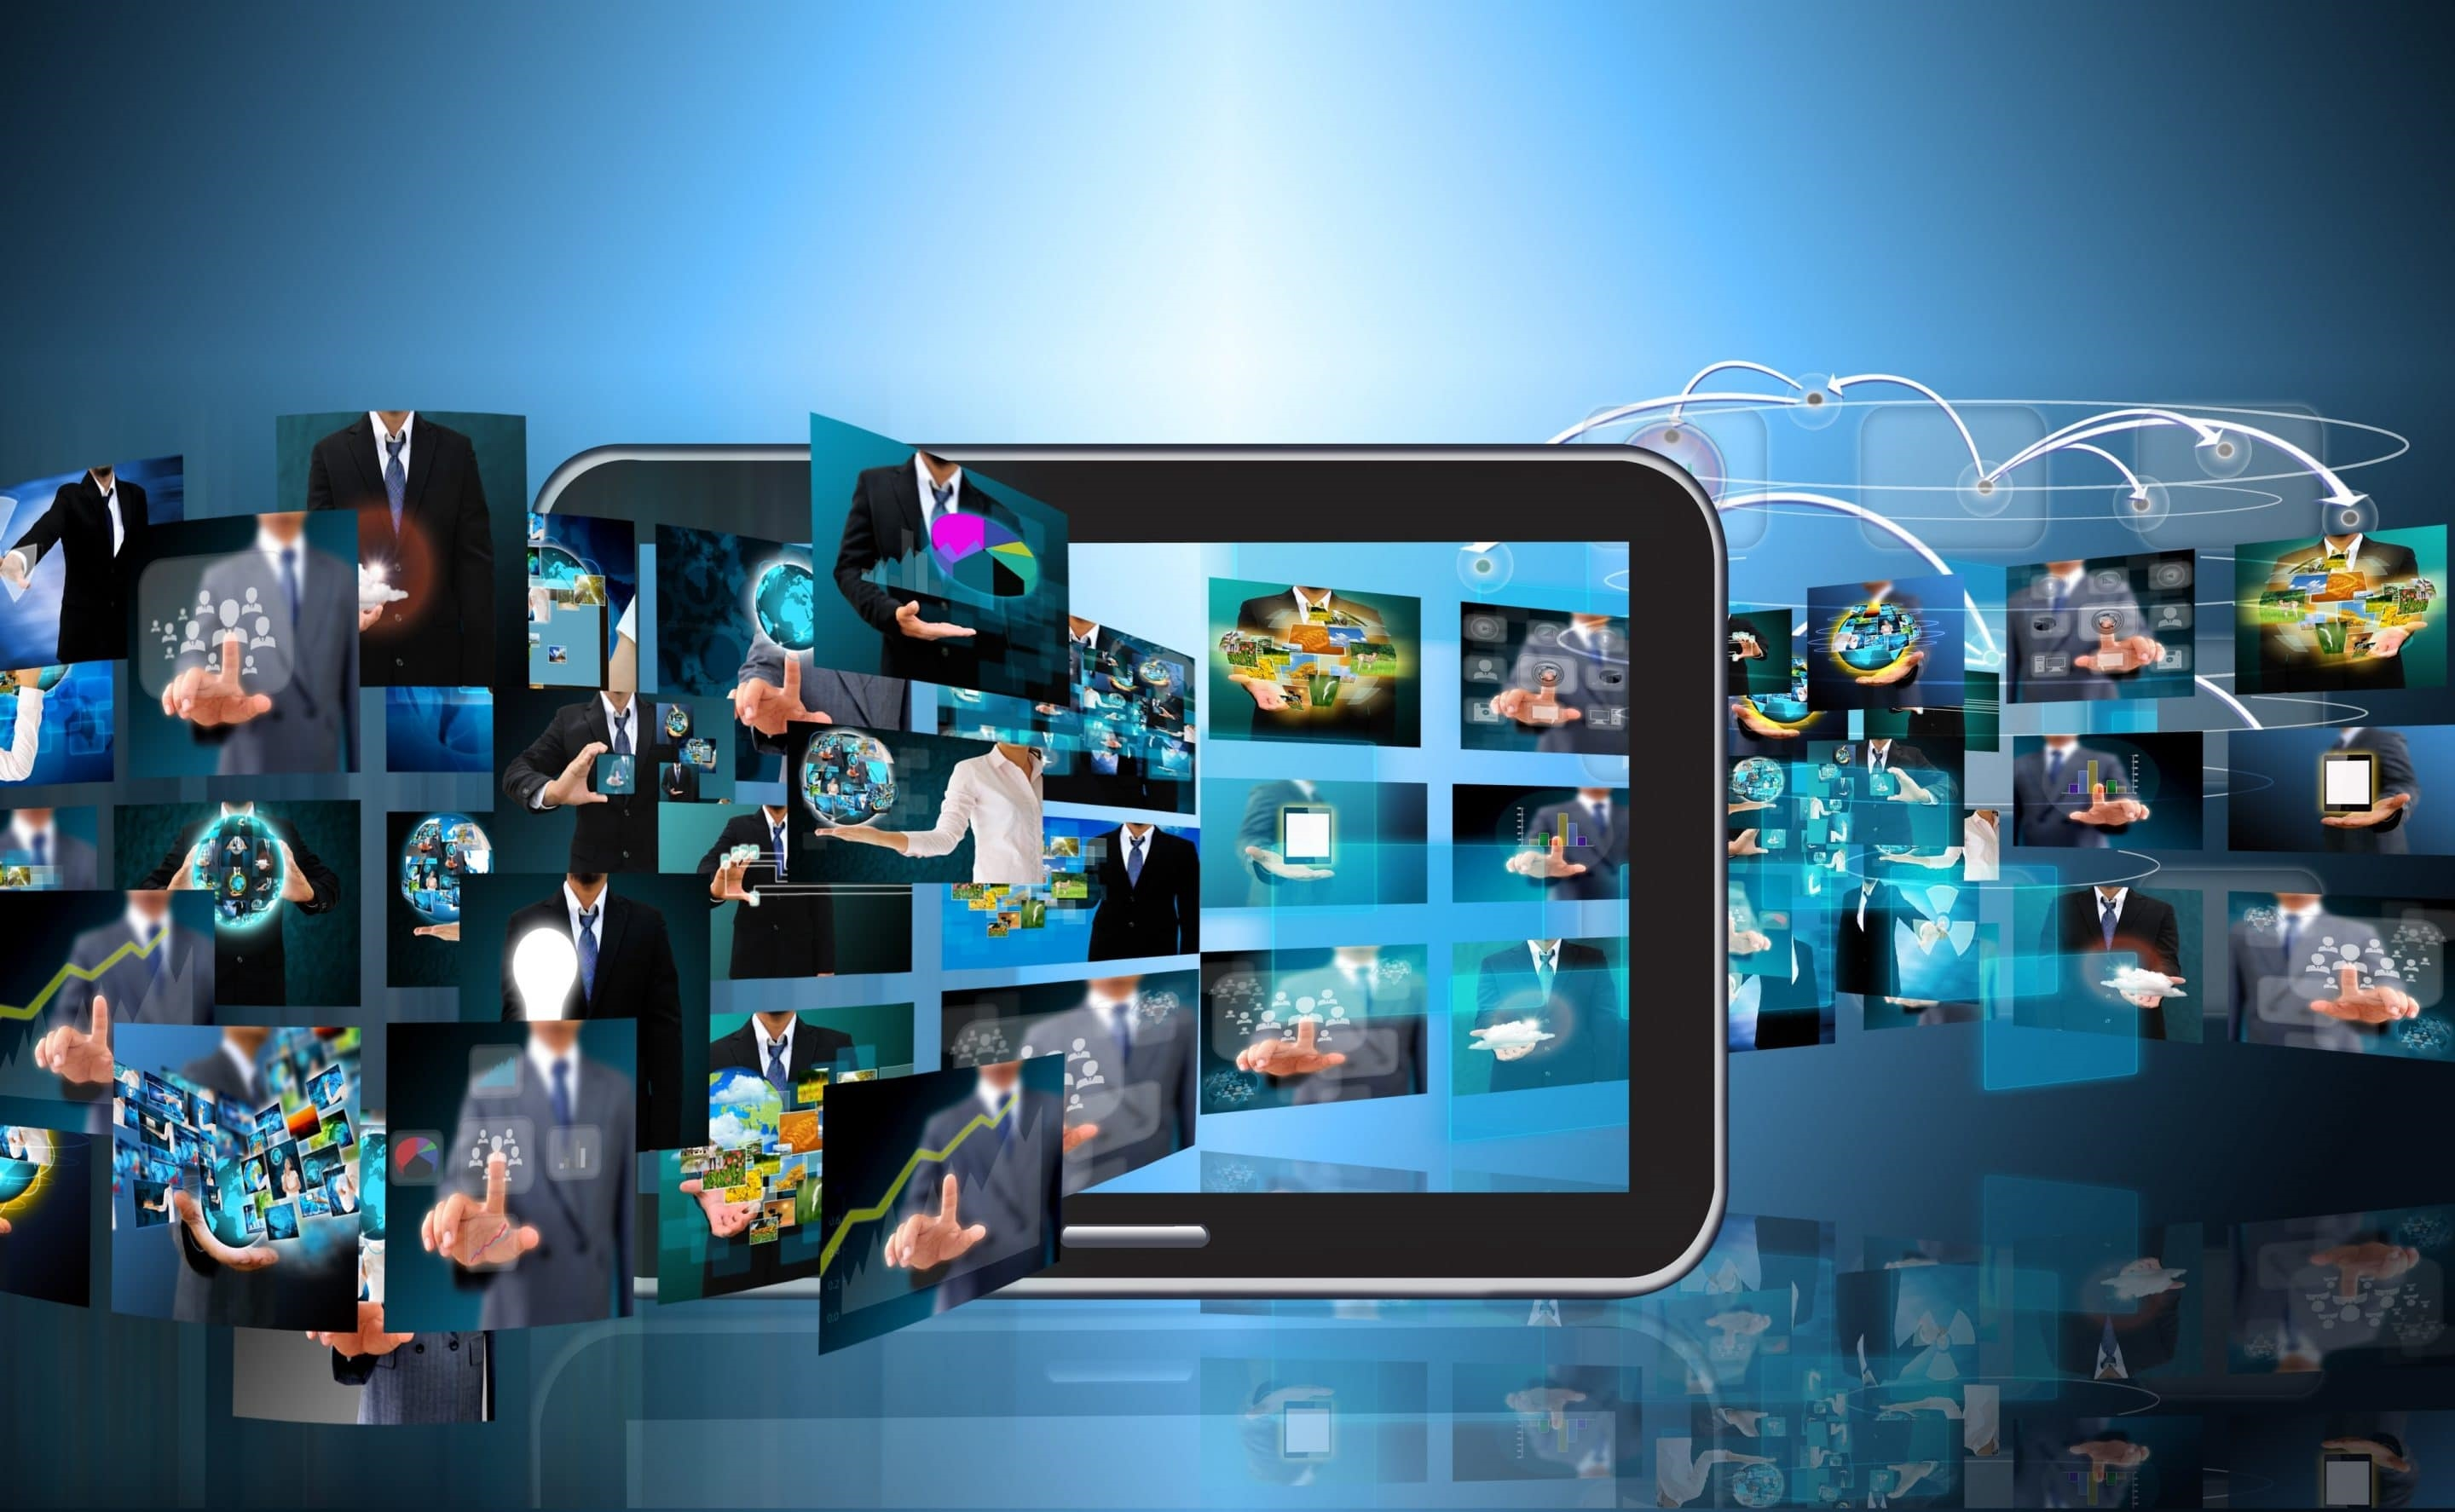 Terrific! Video Listicles Are Still Popular And Easy for Marketing | DeviceDaily.com